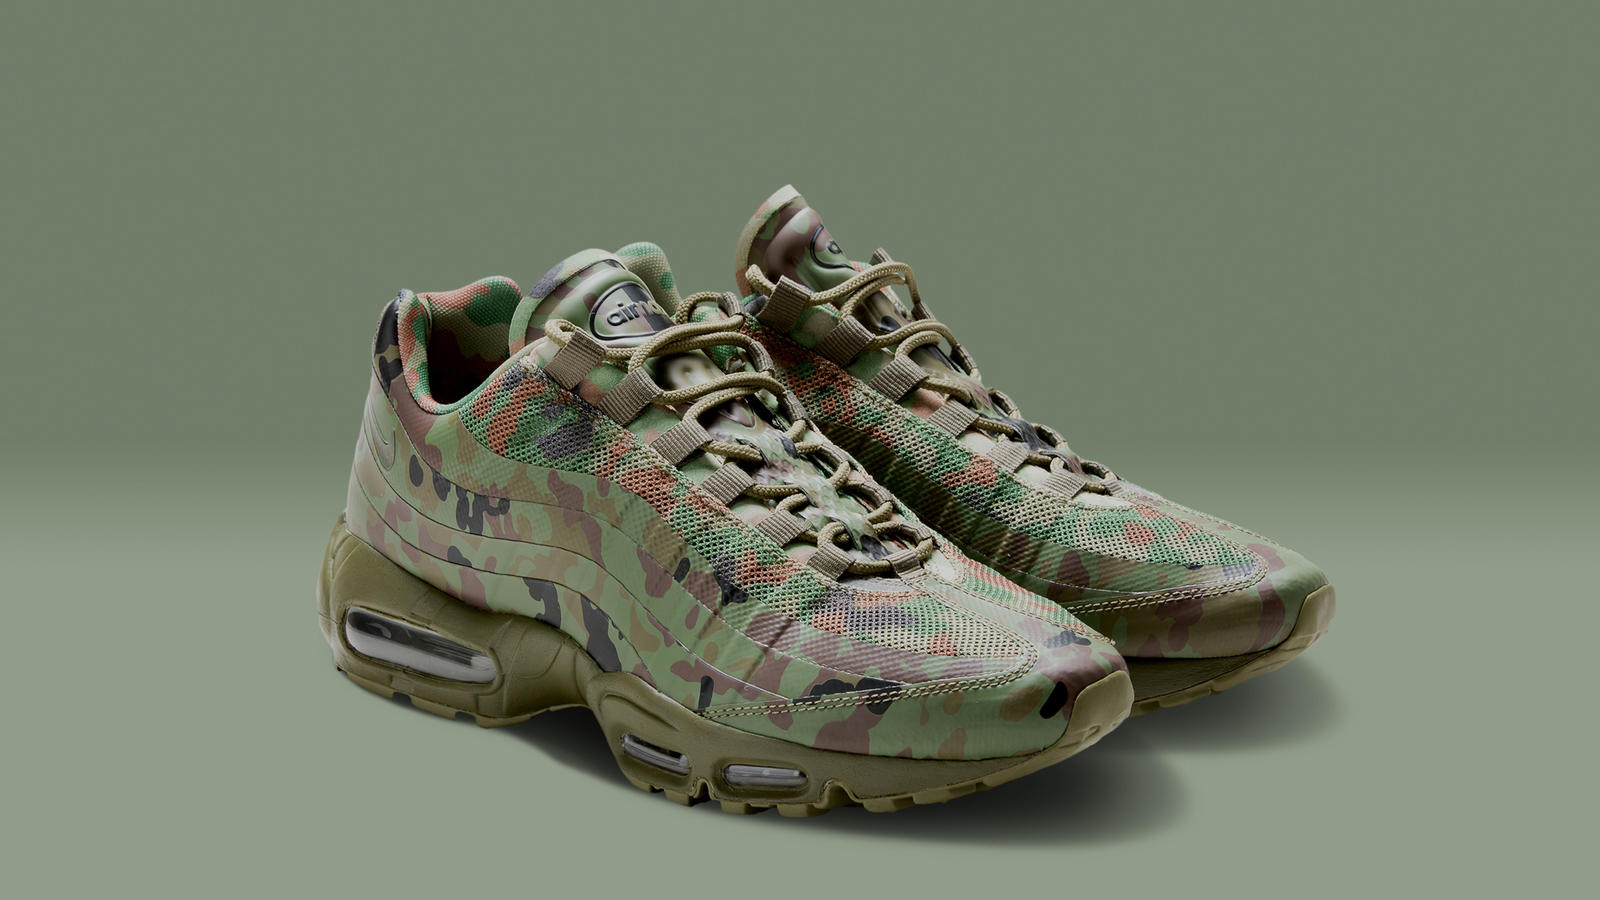 Digital Camo Jordan Shoes